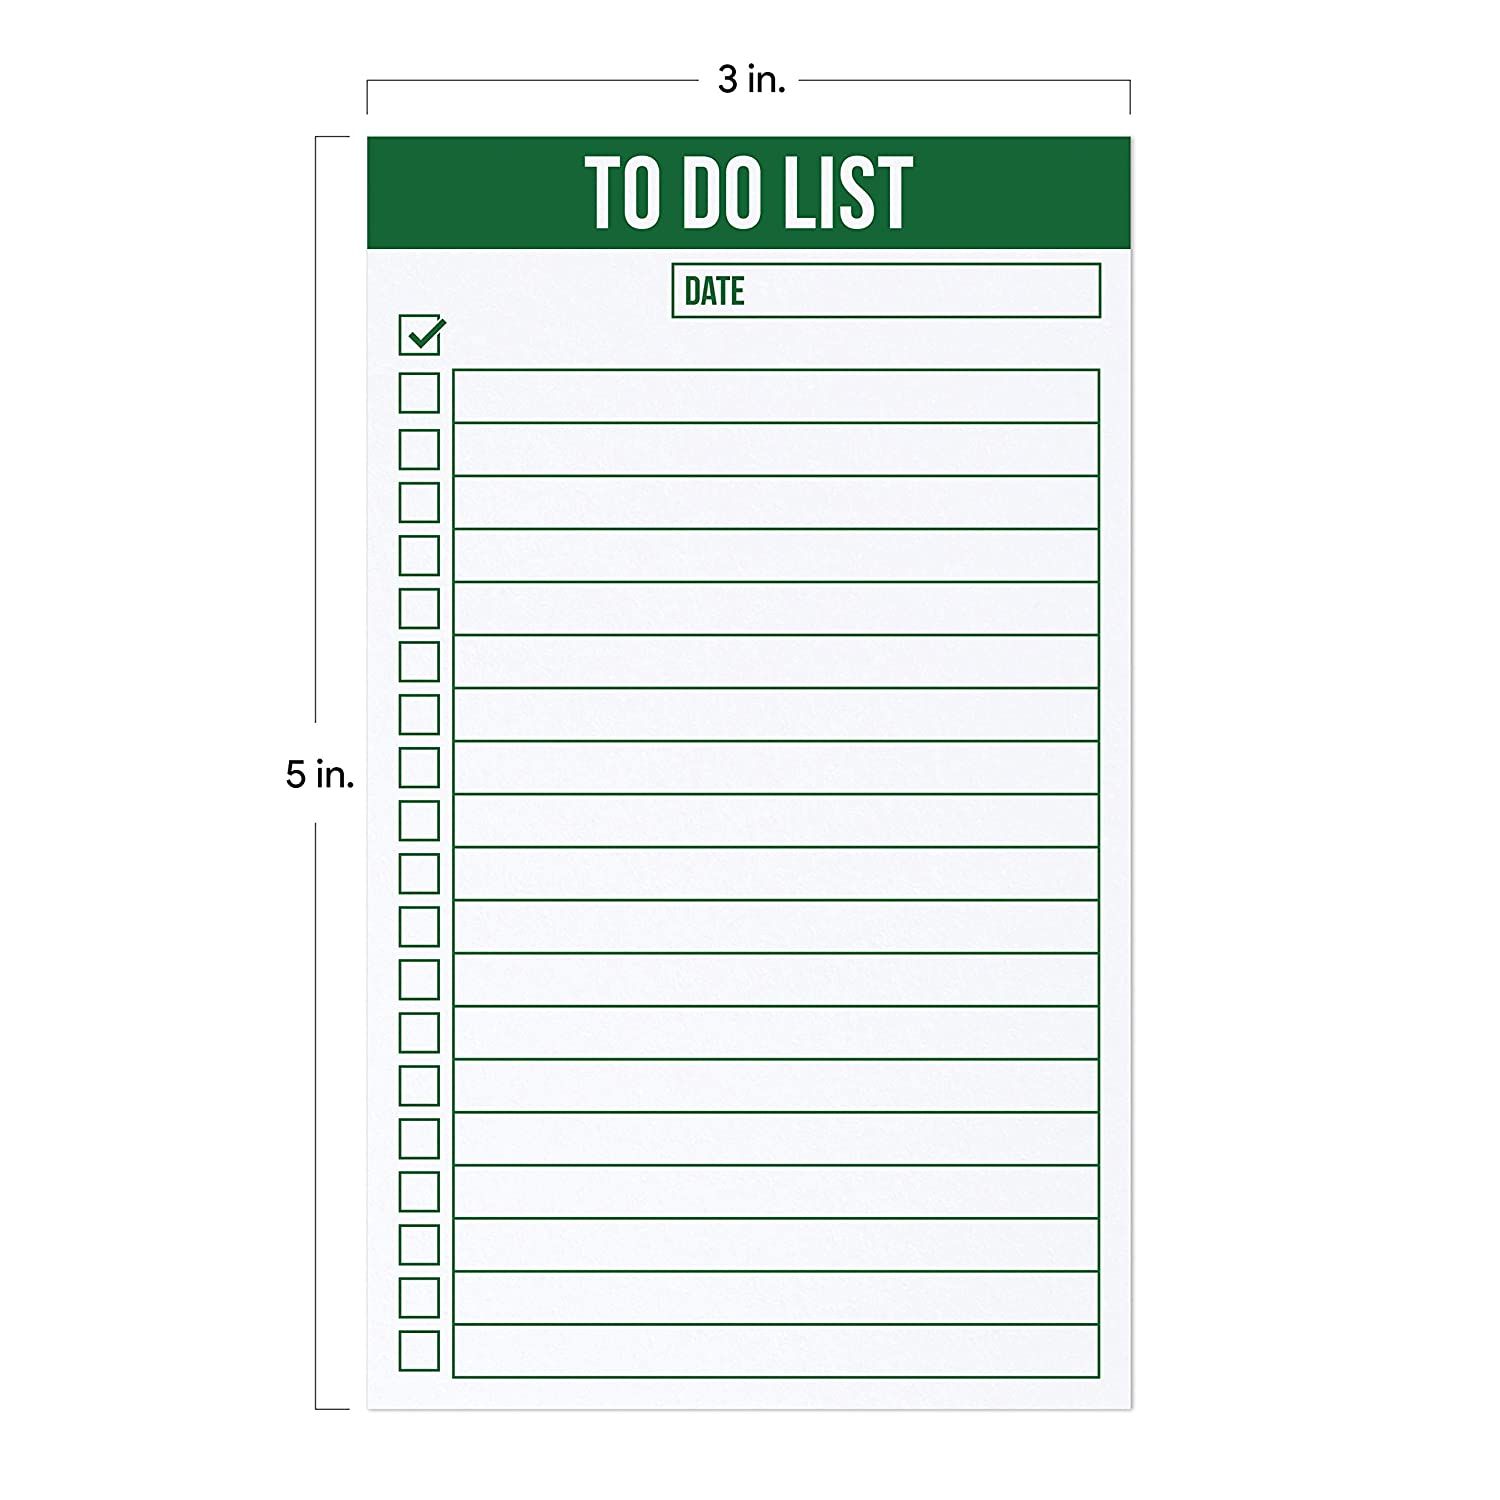 Pack of 100 Jot /& Mark To Do List 3 x 5 Inches Vertical Index Cards Purple